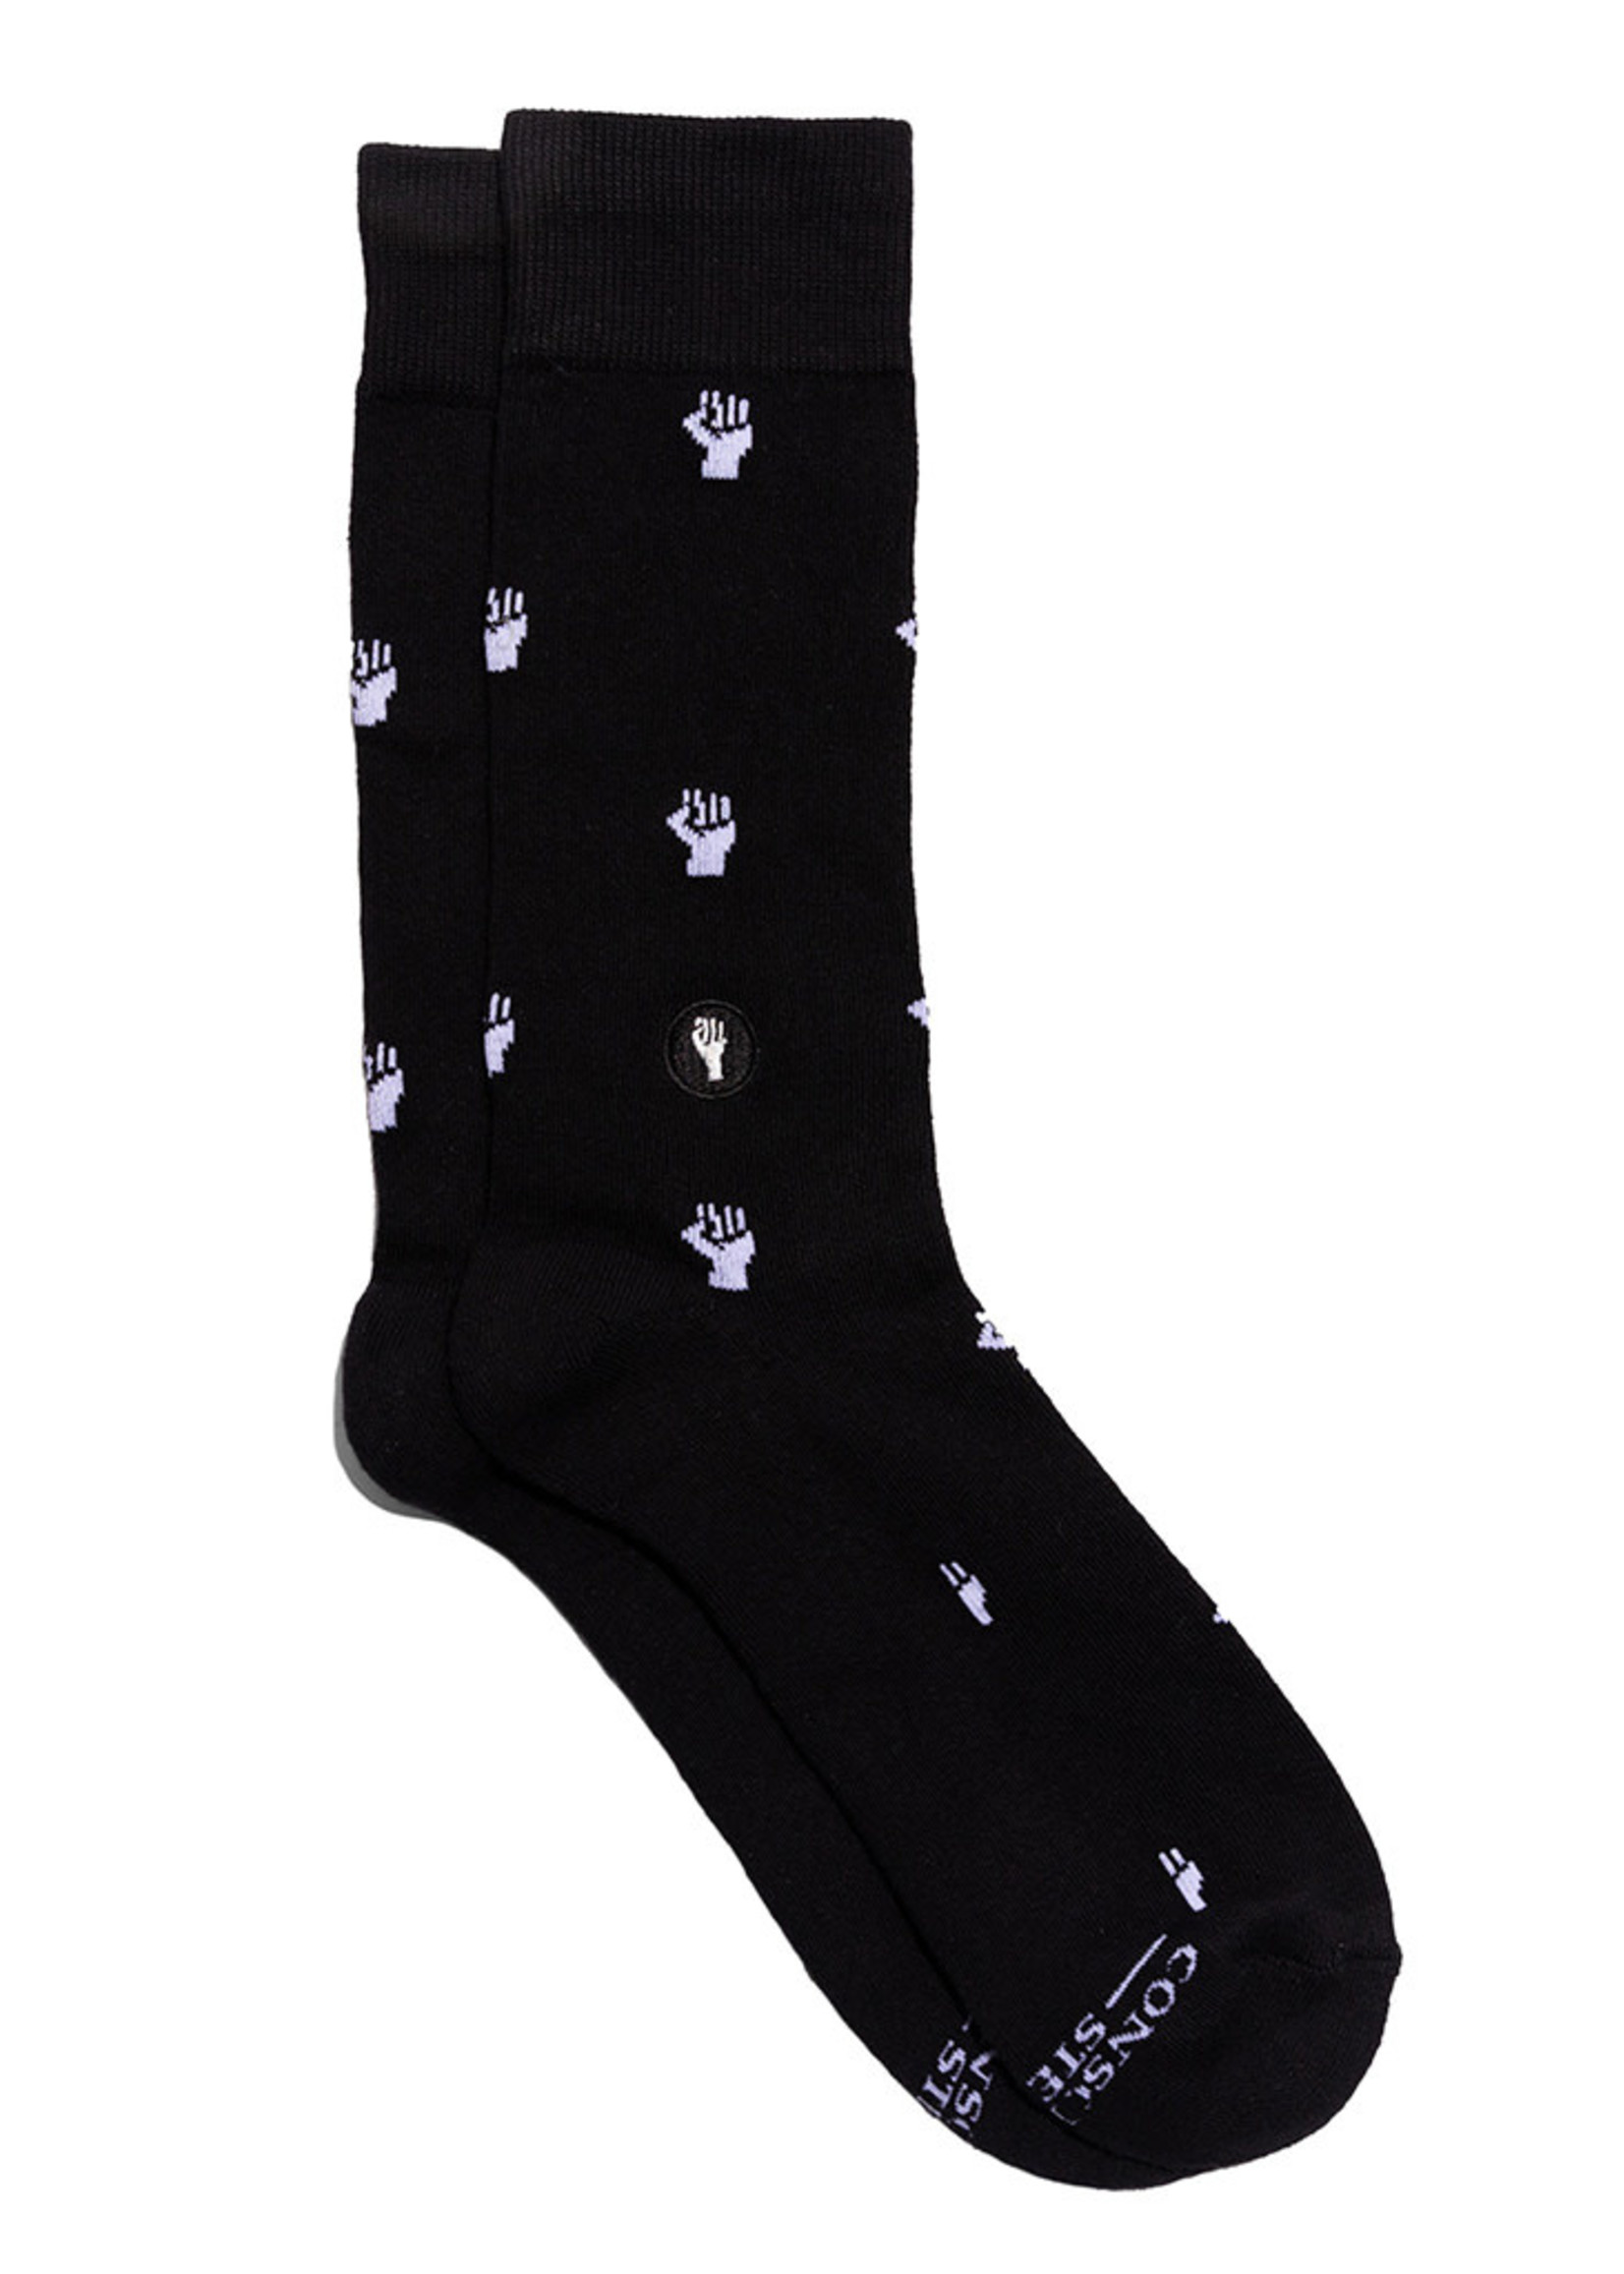 Conscious Step Men's Socks That Fight For Equality [black]